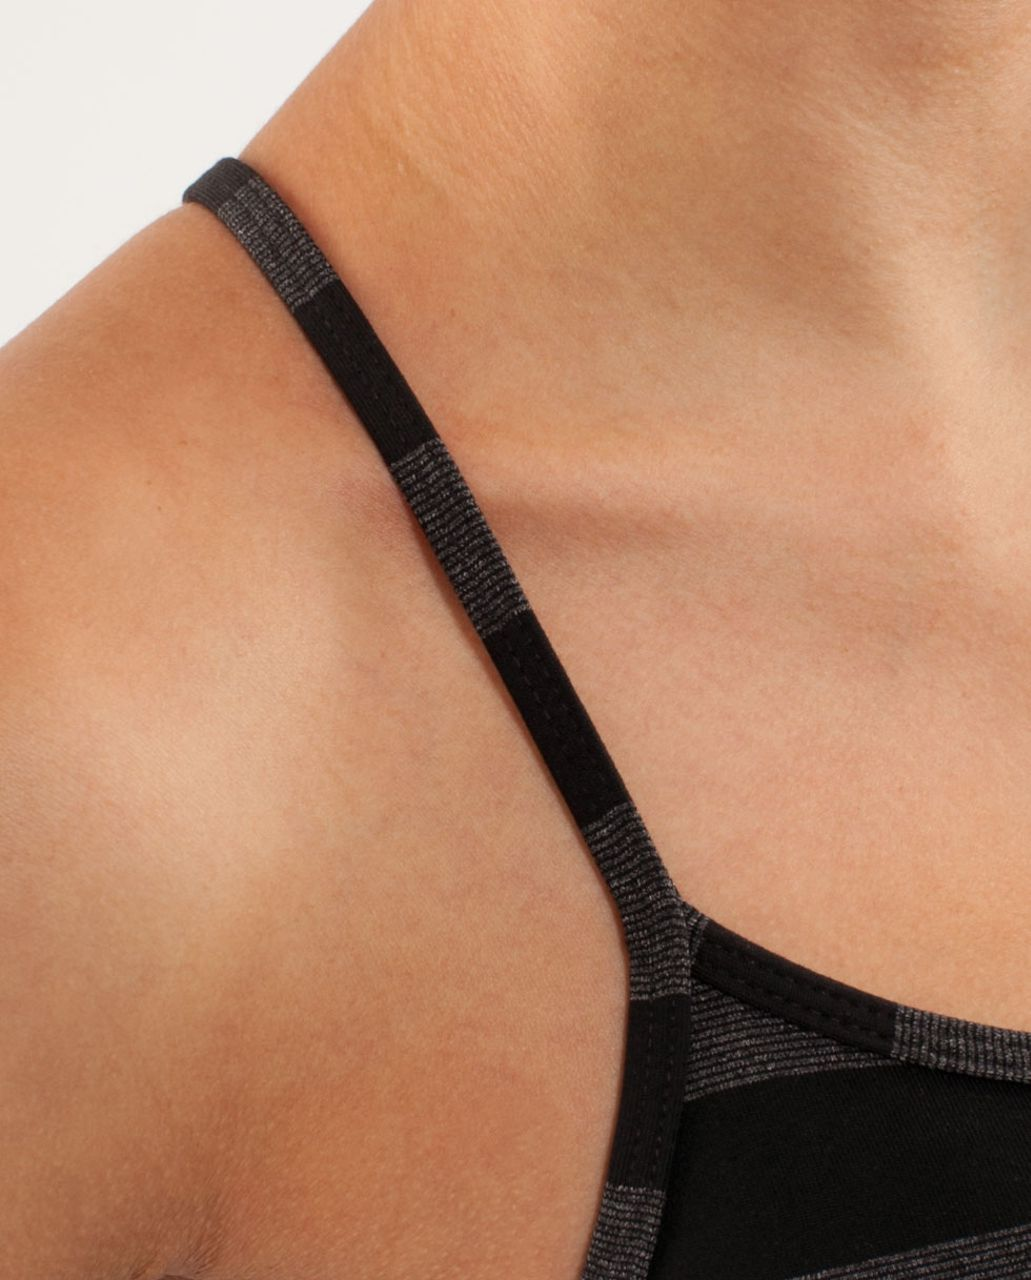 Lululemon Power Y Tank - Black Black Micro Macro Stripe